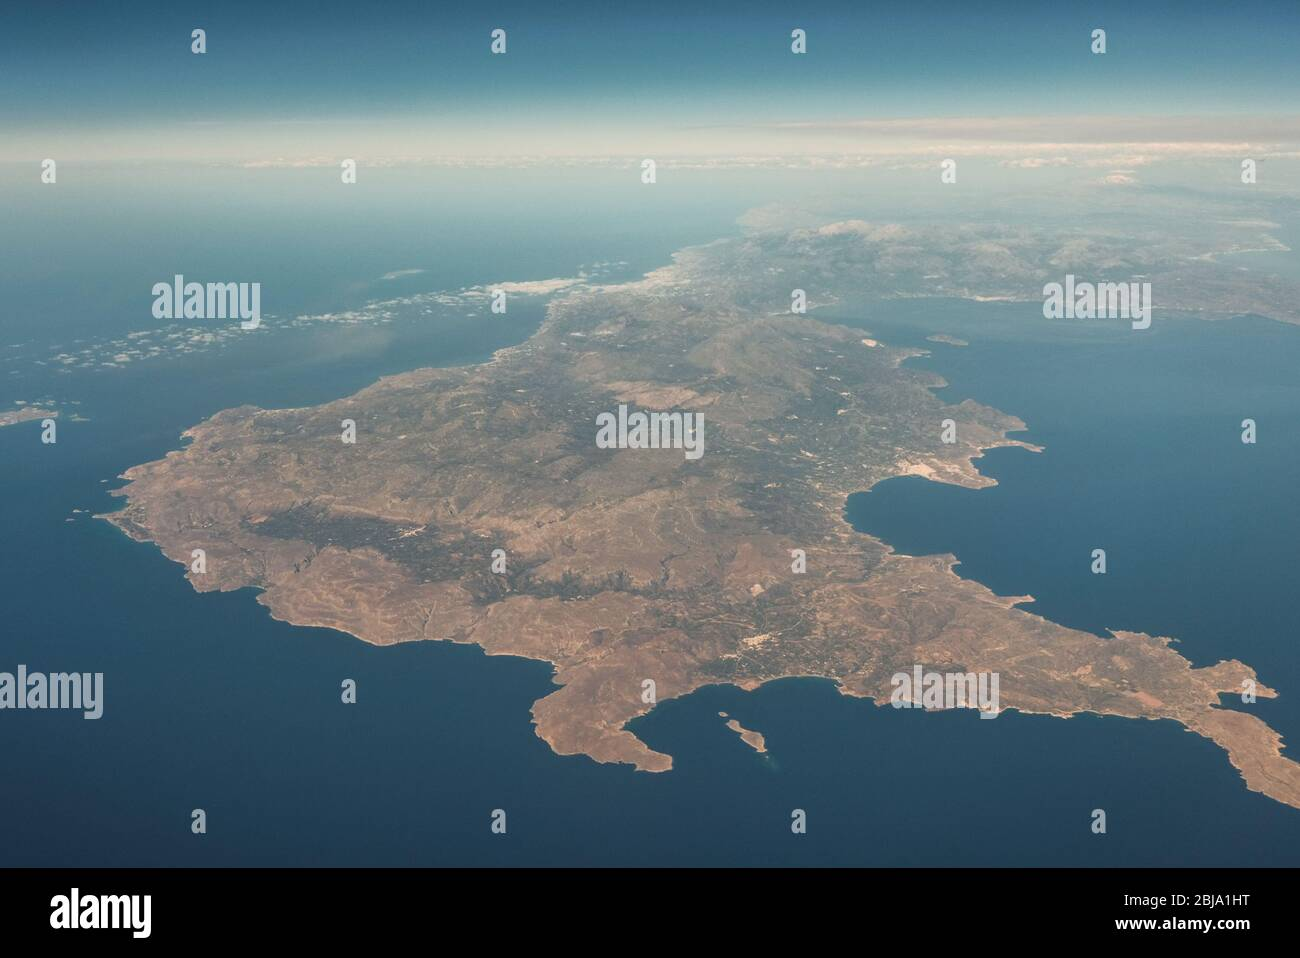 Aerial view of the Crete, the largest of the Greek islands and one of the largest islands in the Mediterranean Sea Stock Photo